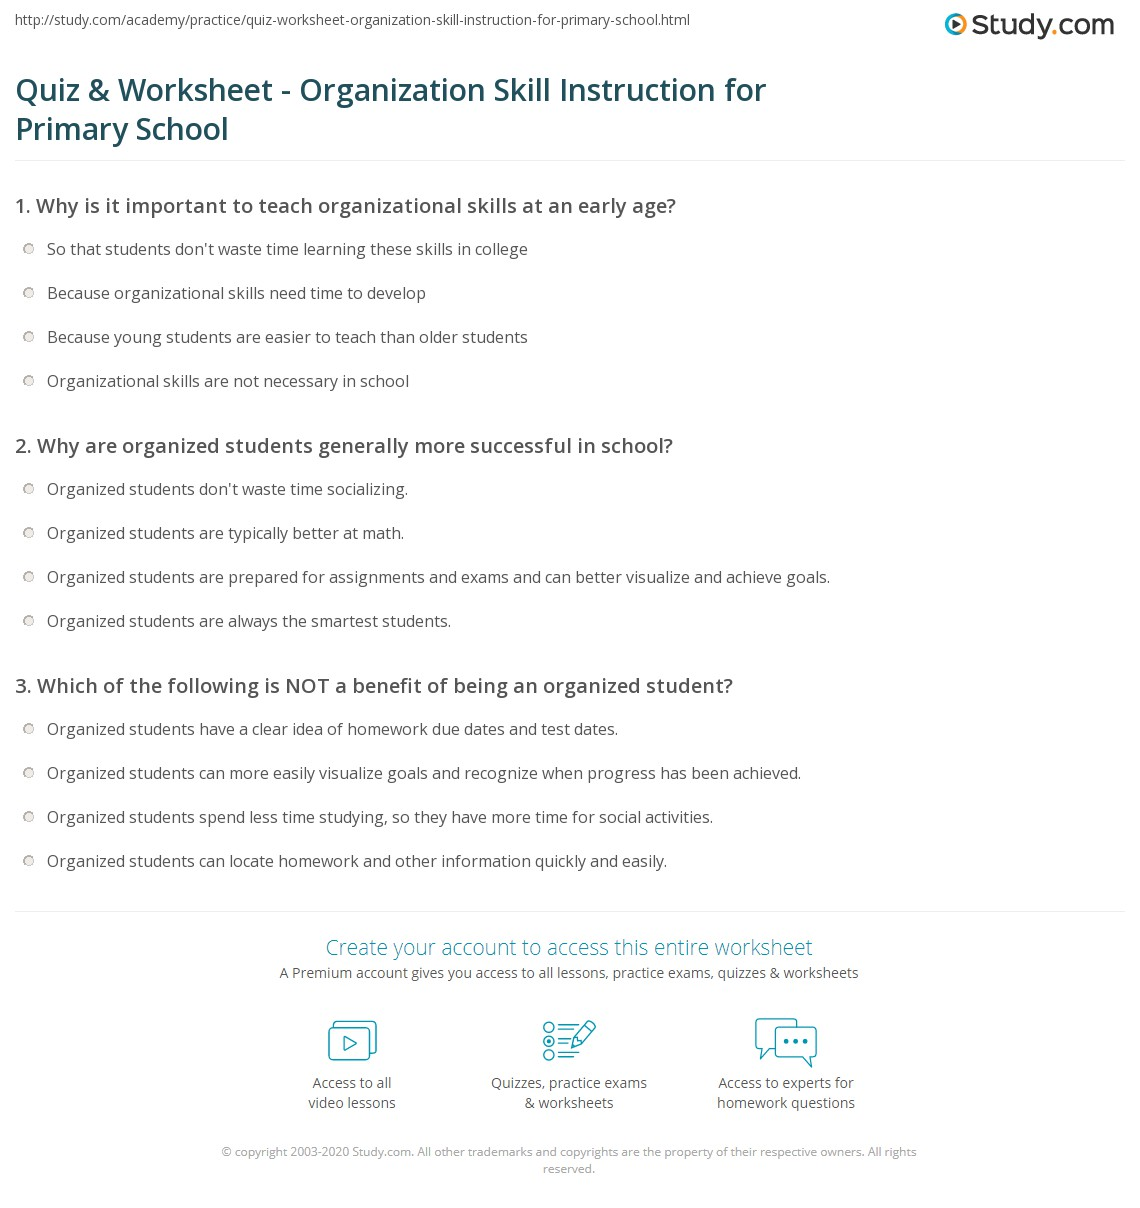 Quiz & Worksheet - Organization Skill Instruction for Primary School ...